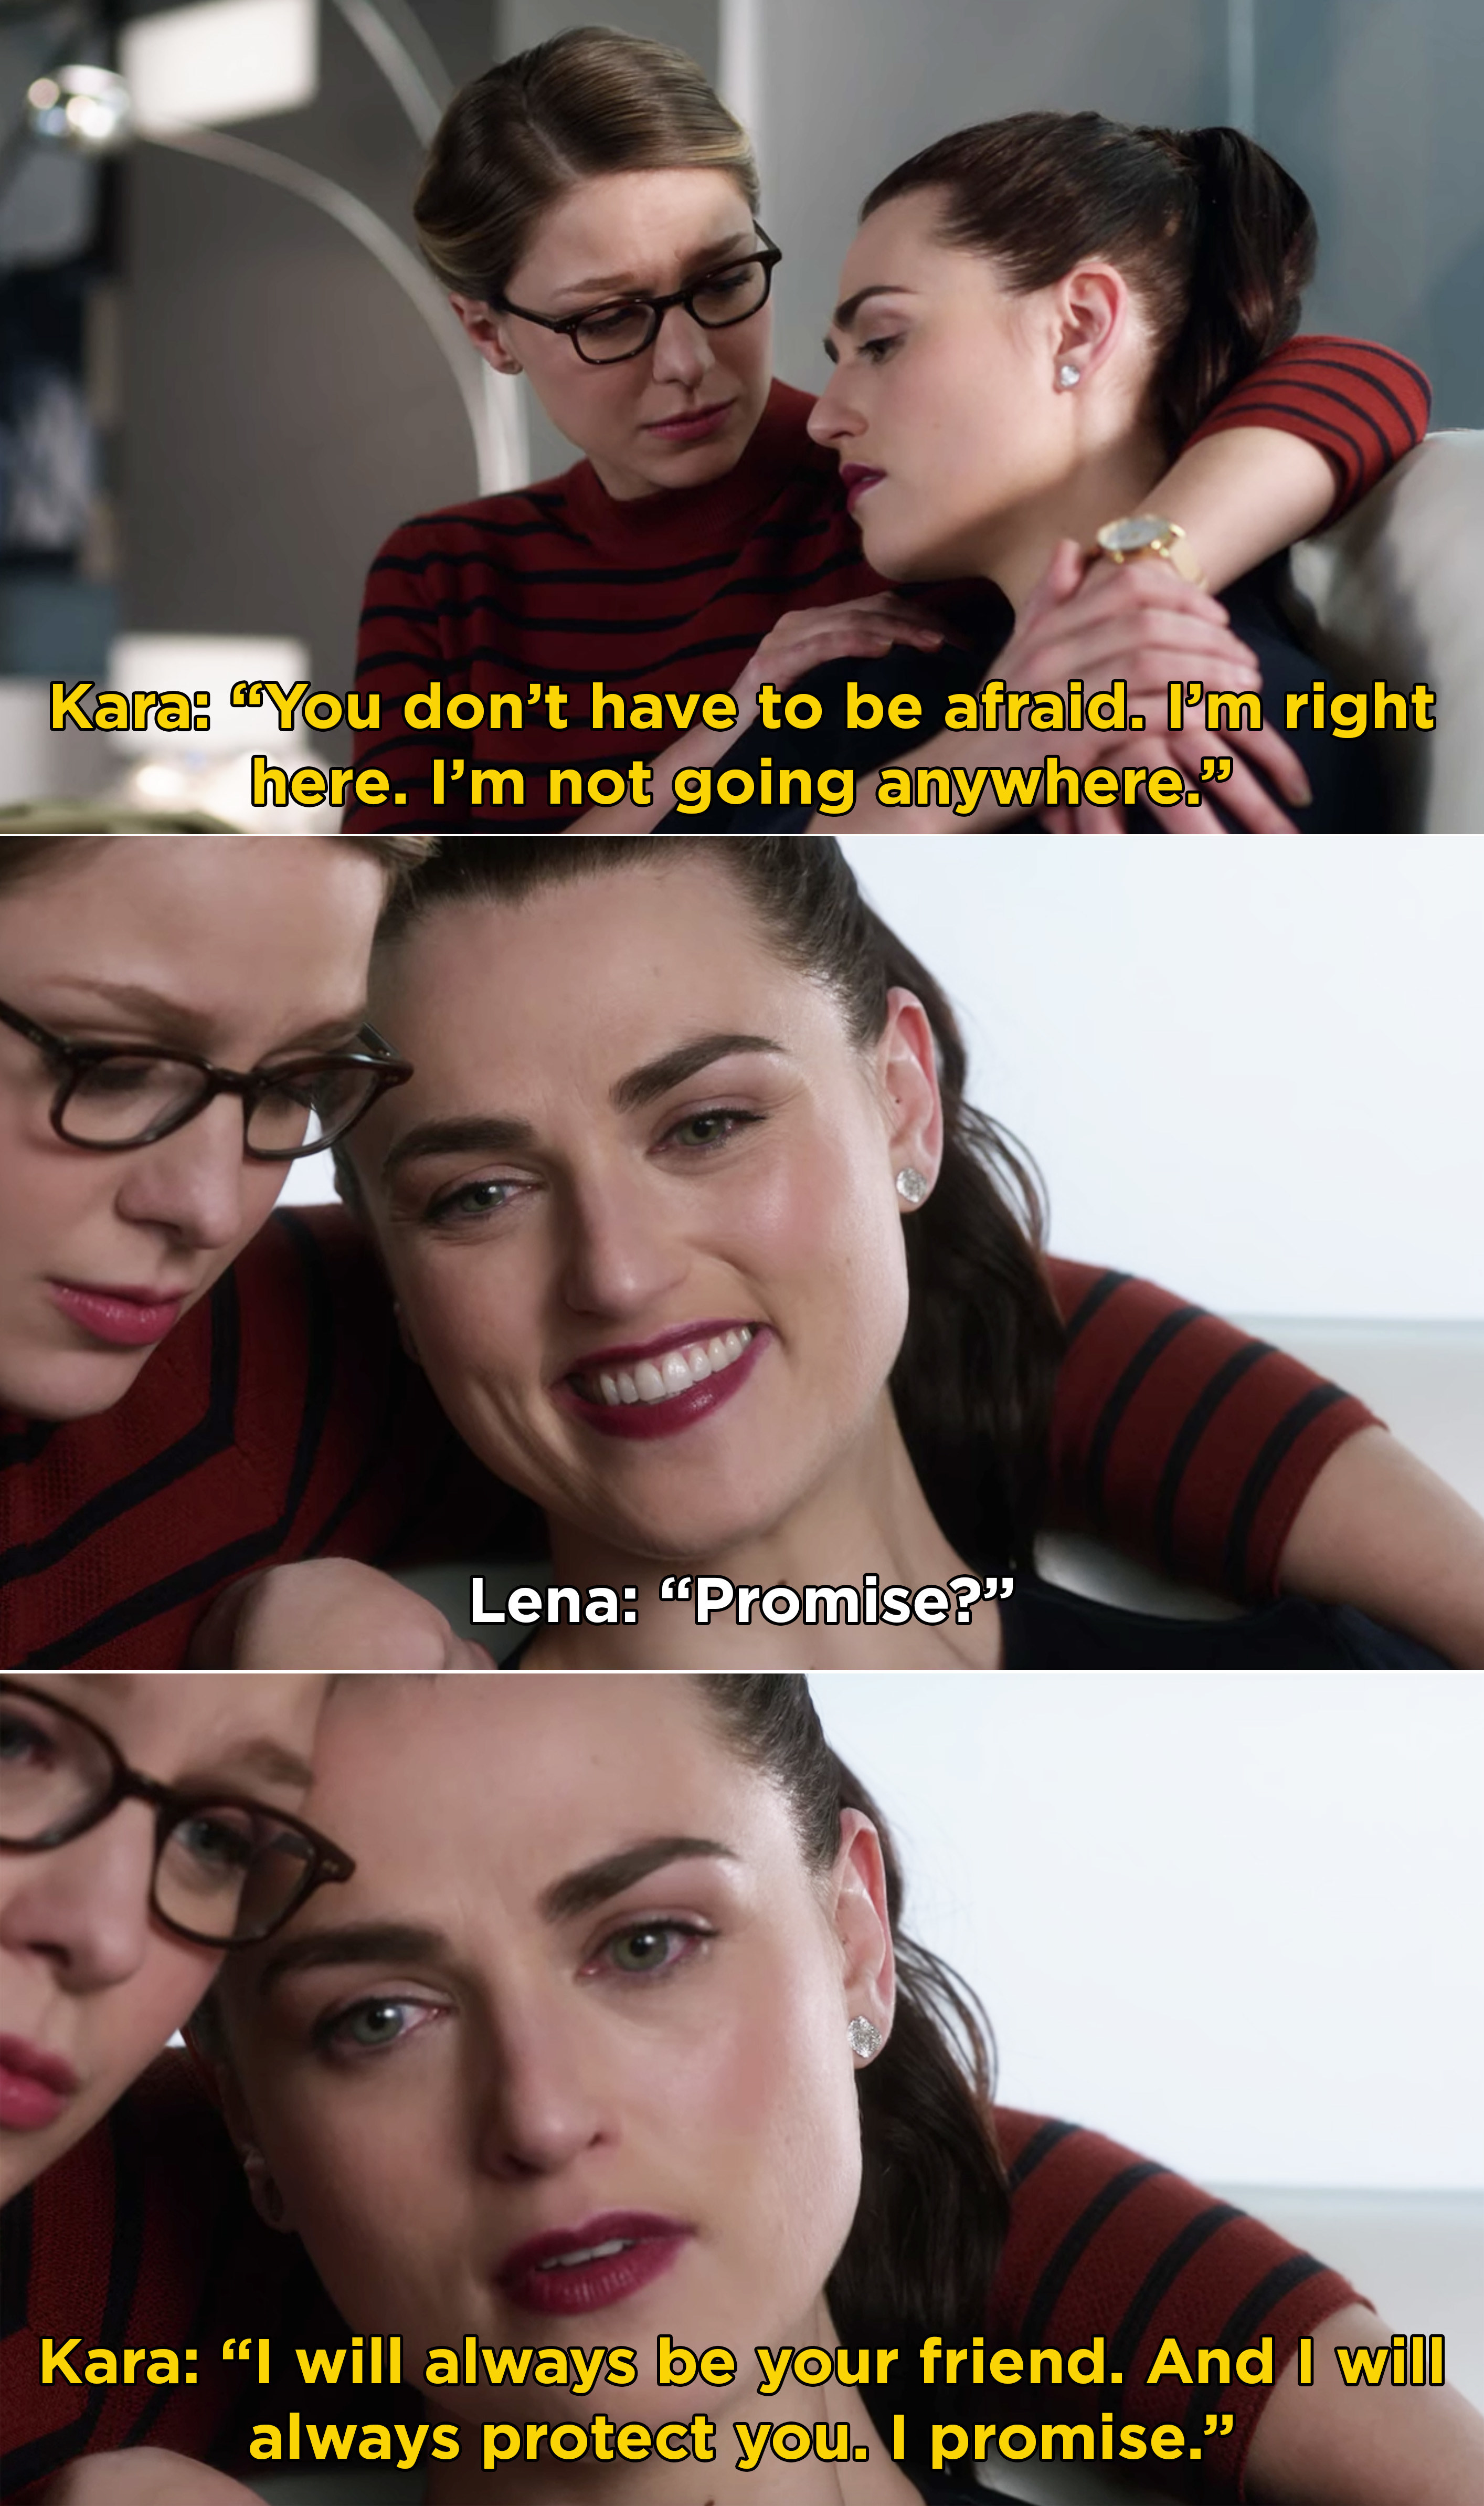 Kara telling Lena that she doesn't have to be afraid and that she's not going anywhere